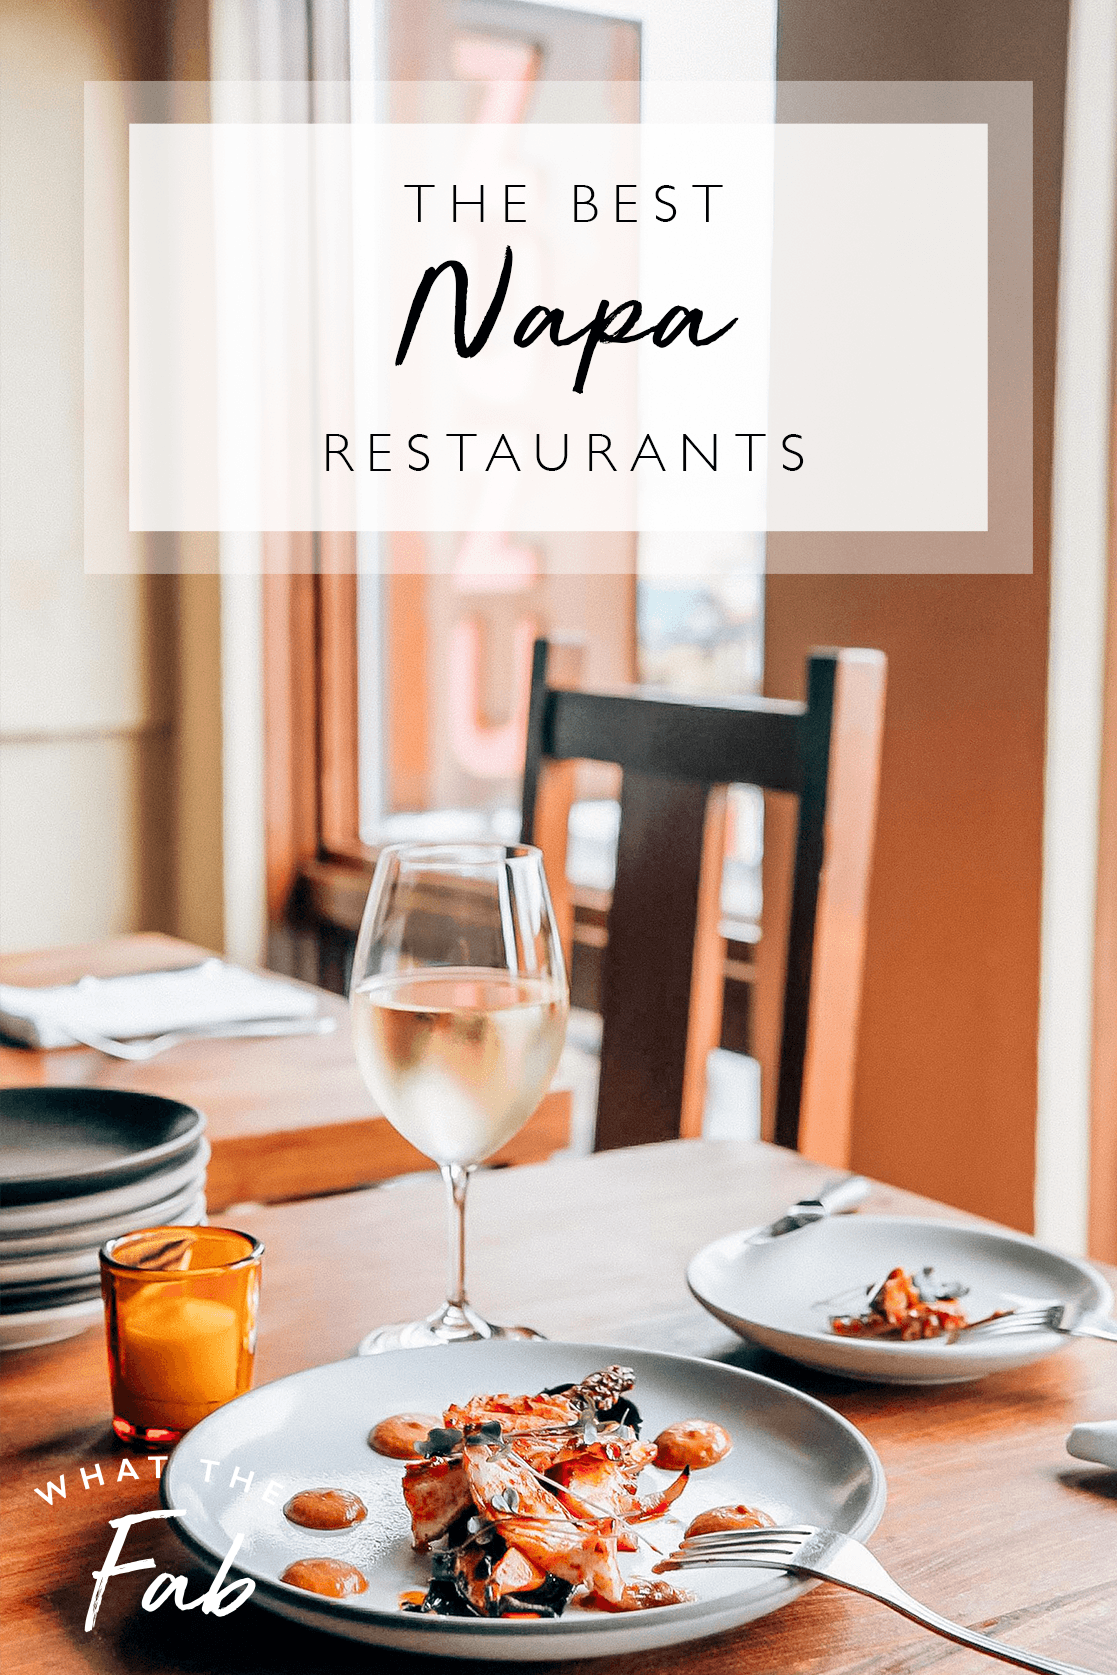 The Best Napa Restaurants, by Travel Blogger What The Fab